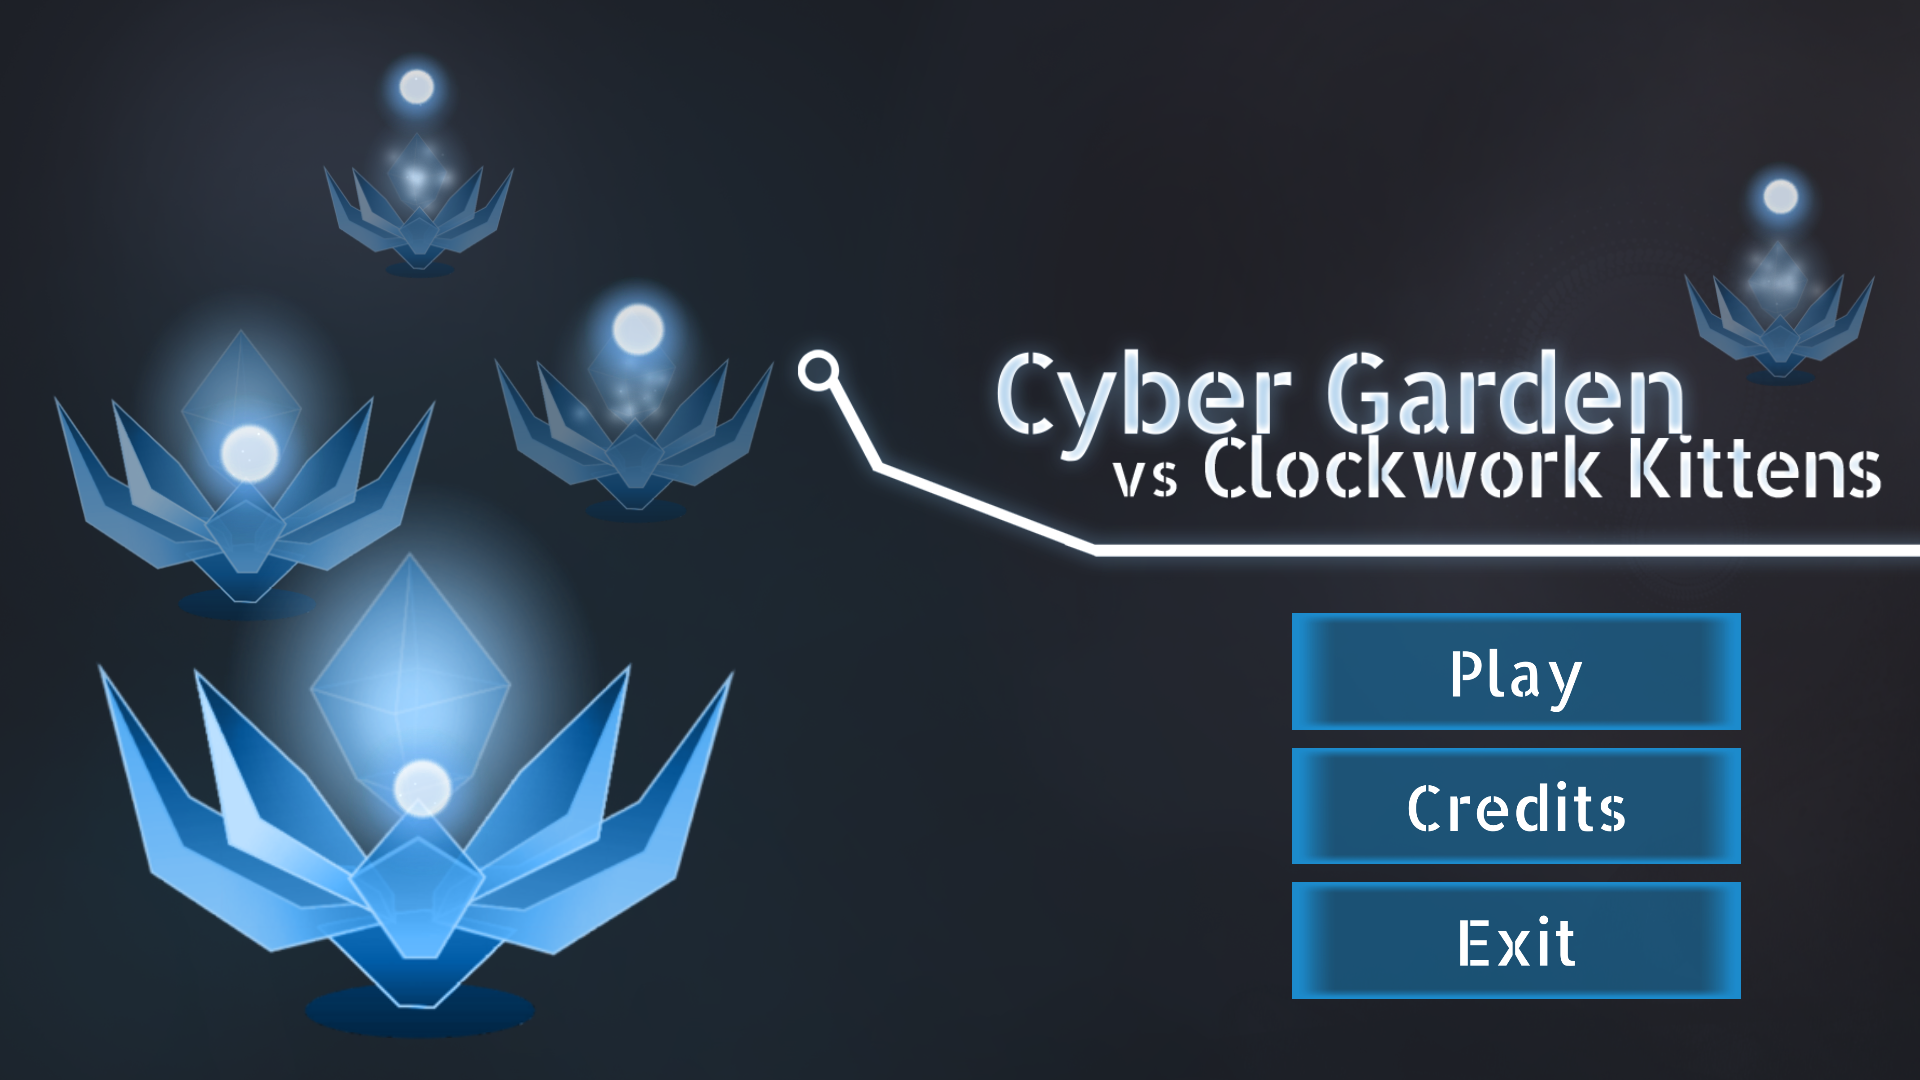 Cyber Garden vs Clockwork Kittens